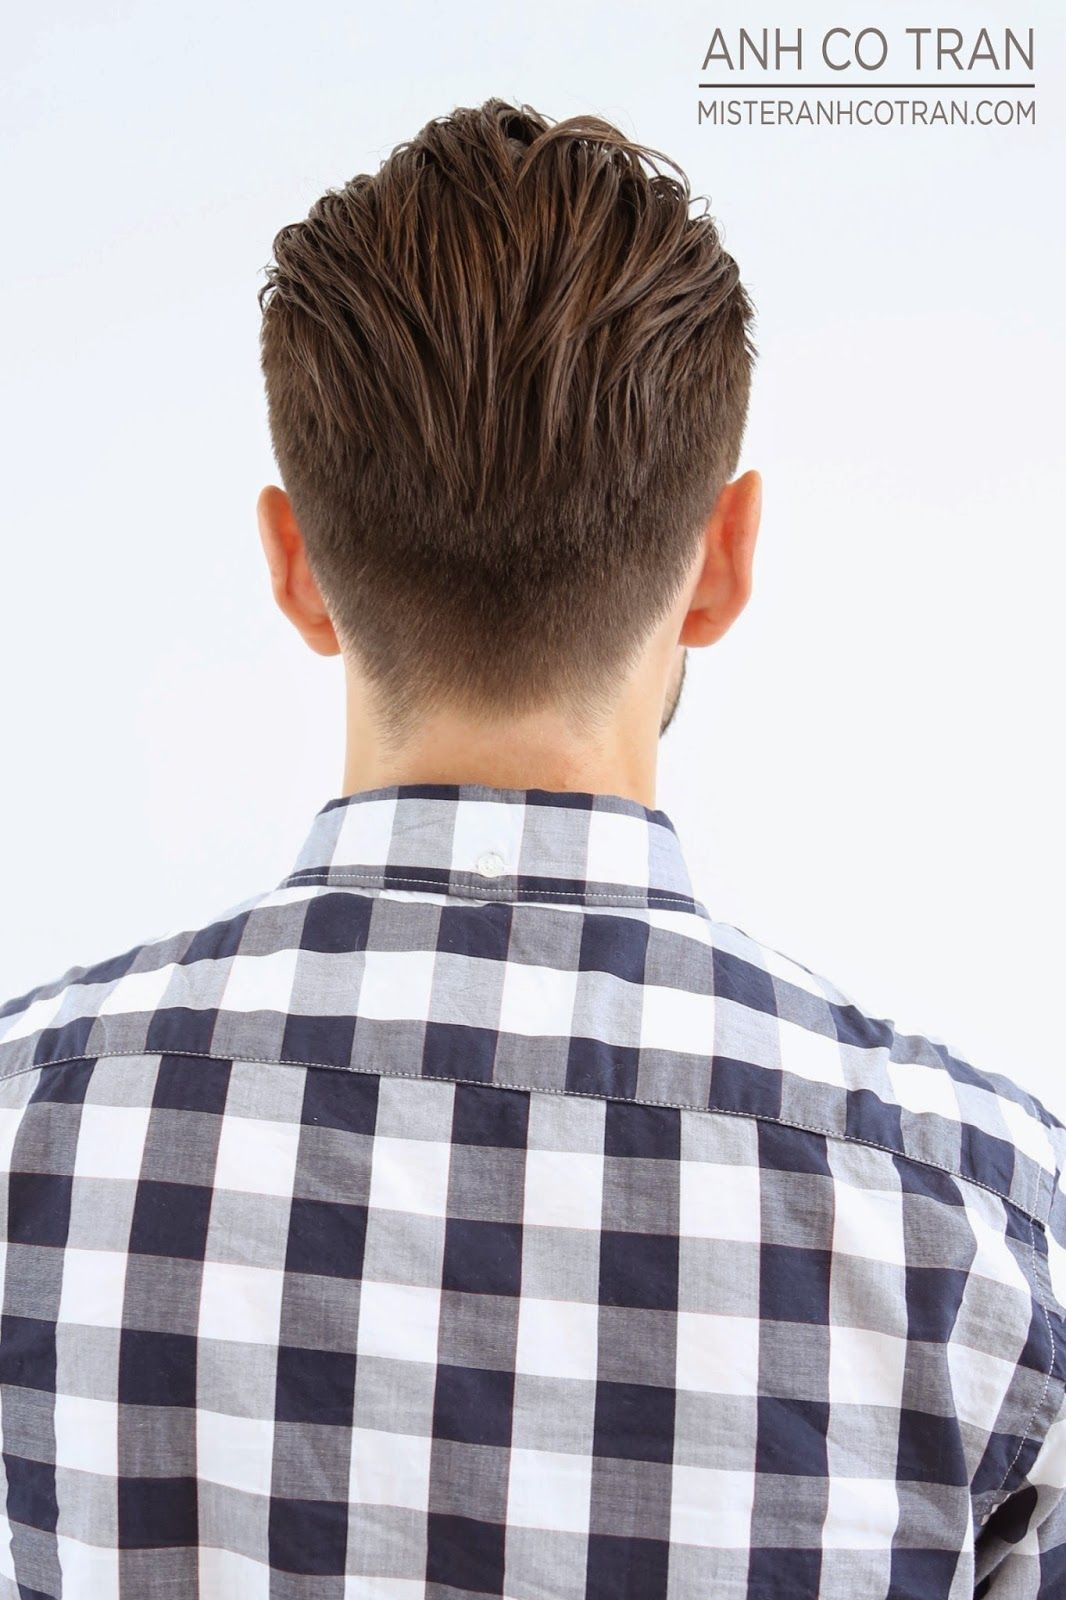 Men Cuts Traditional Undercut Backside Hairstyle Pinterest